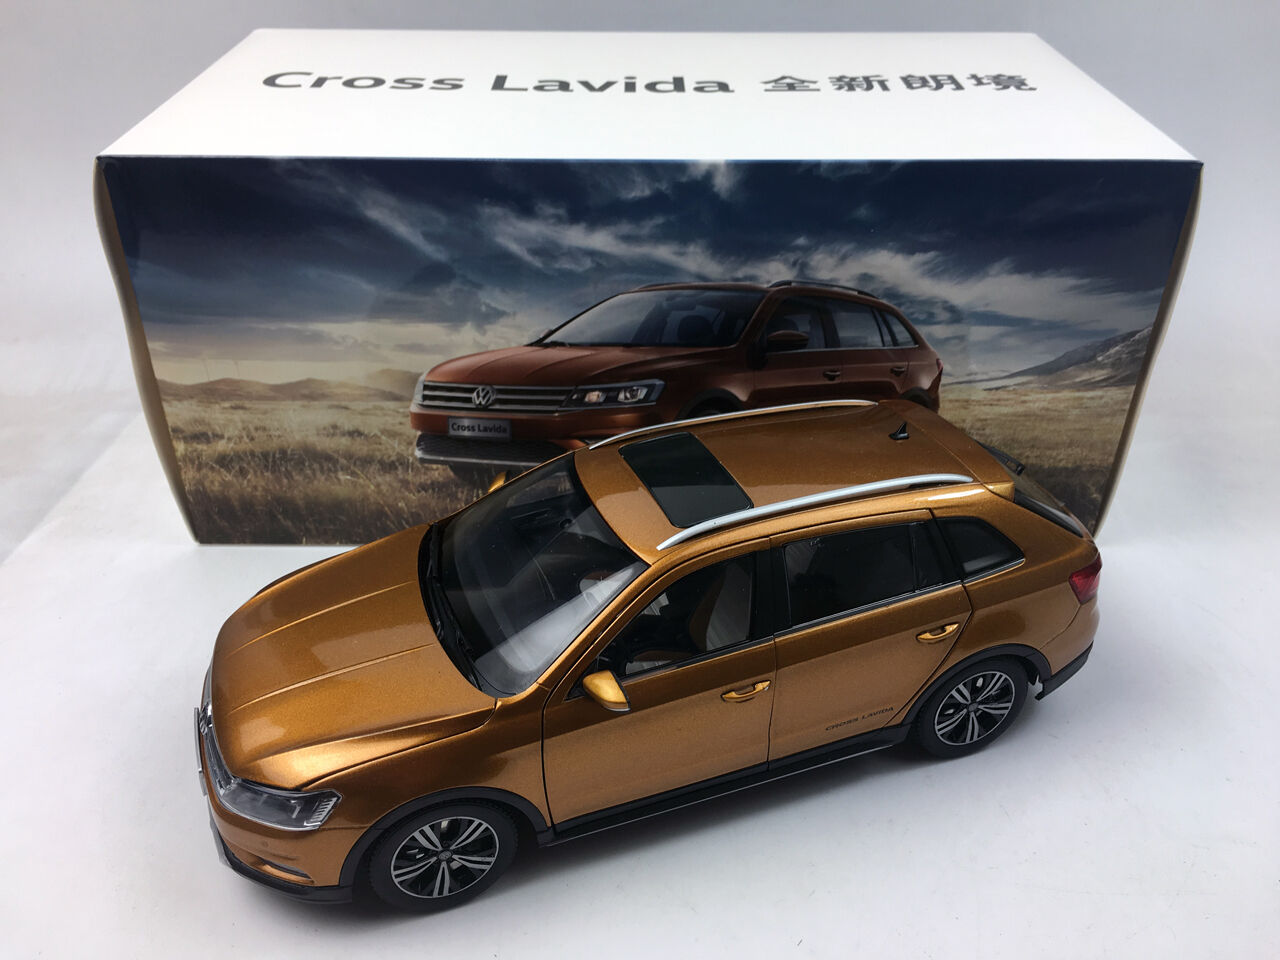 1:18 Shanghai Volkswagen Cross Lavida 2015 marrone Die-Cast Metal Model